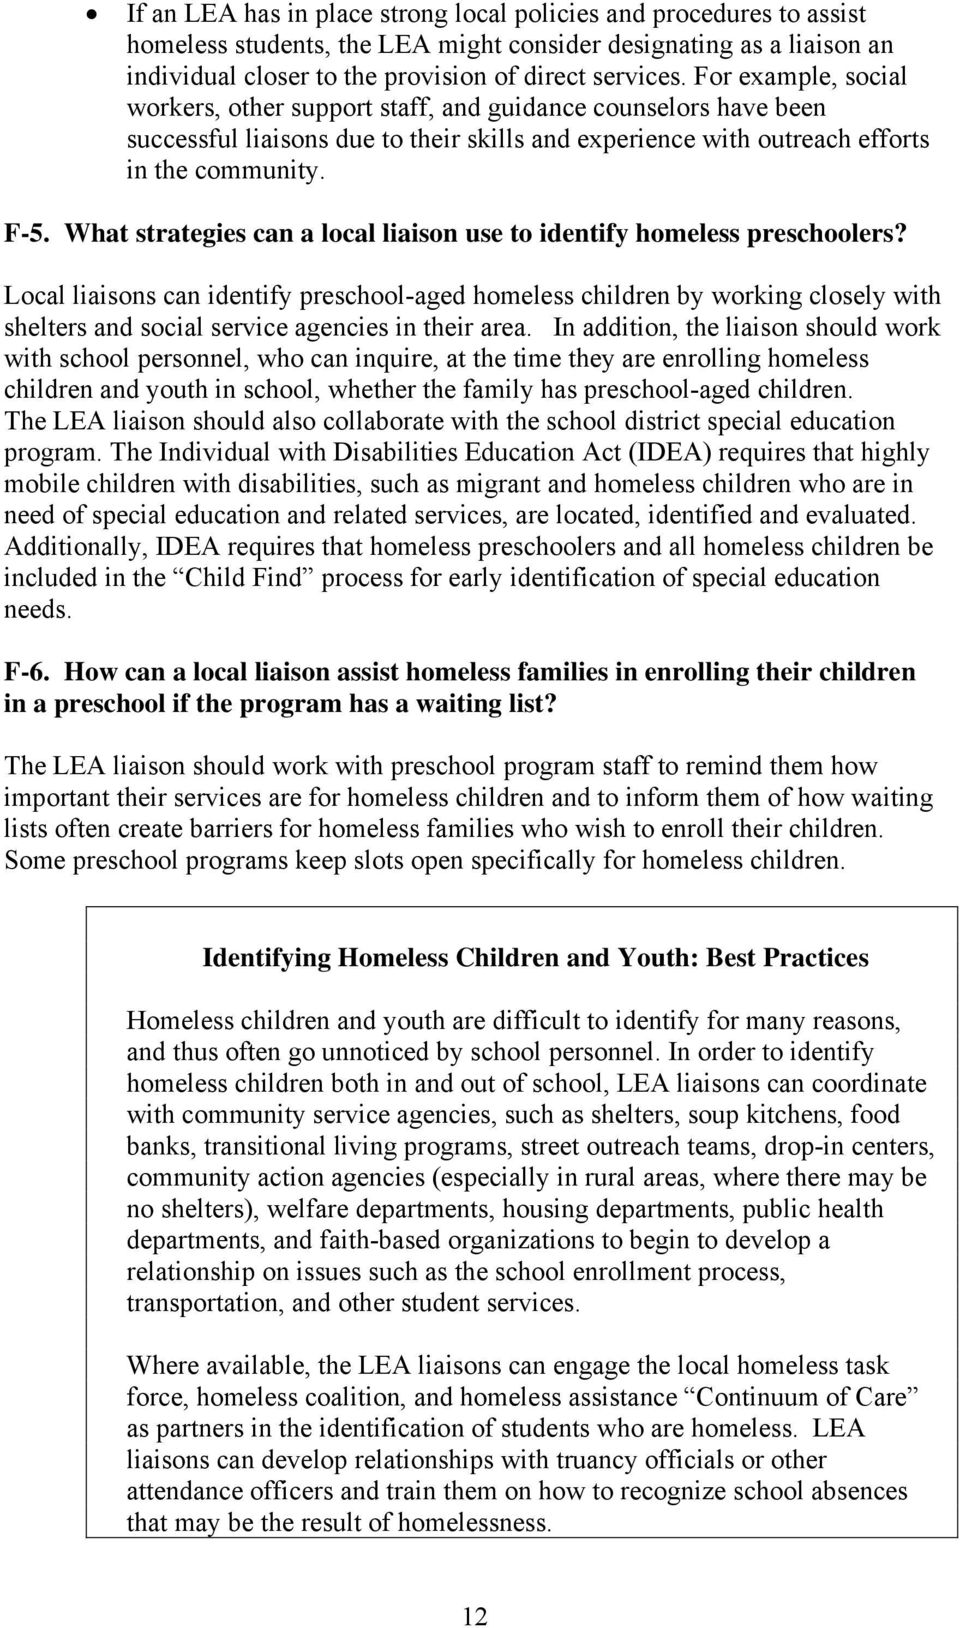 What strategies can a local liaison use to identify homeless preschoolers?